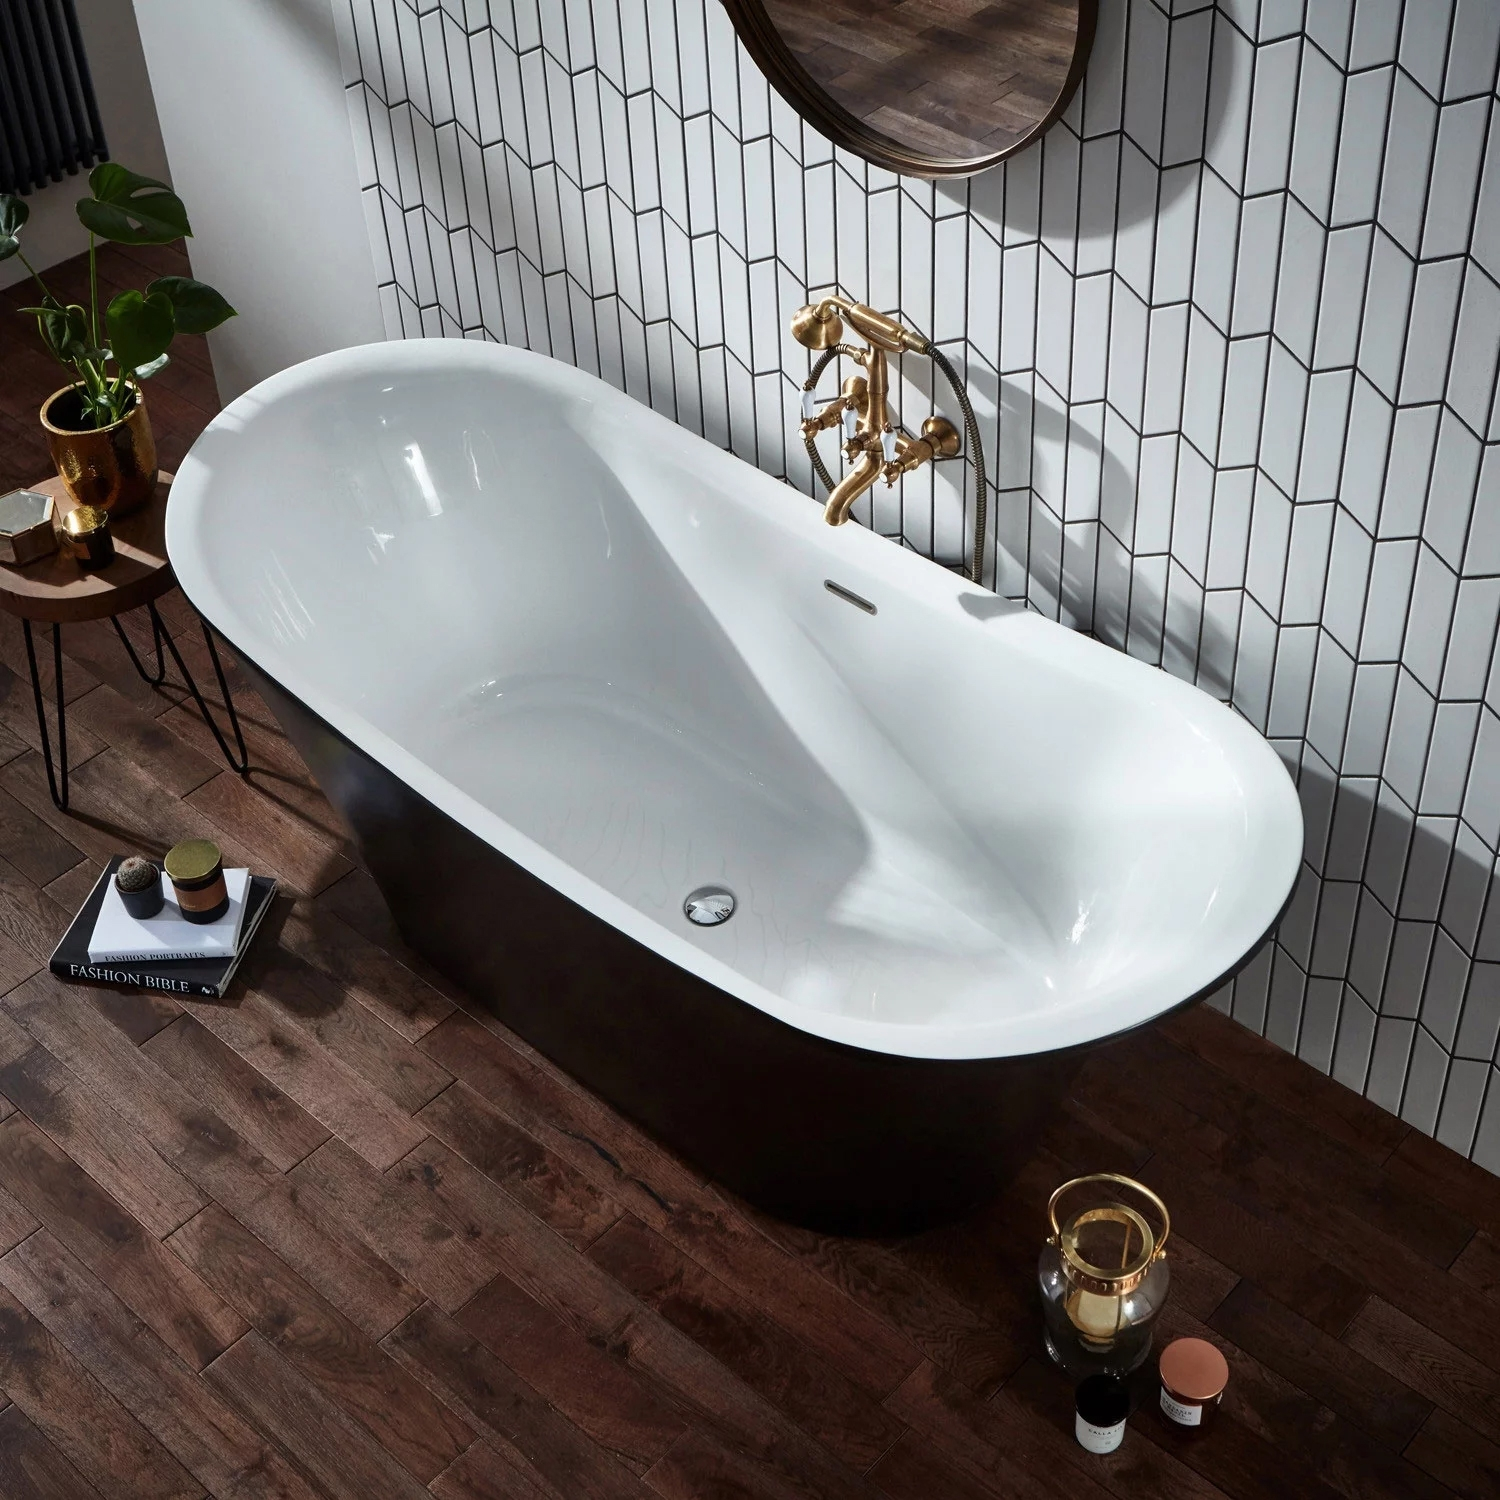 Verona Bow Graphite Traditional Freestanding Bath 1800mm x 800mm integrated Waste and Black Plinth-0